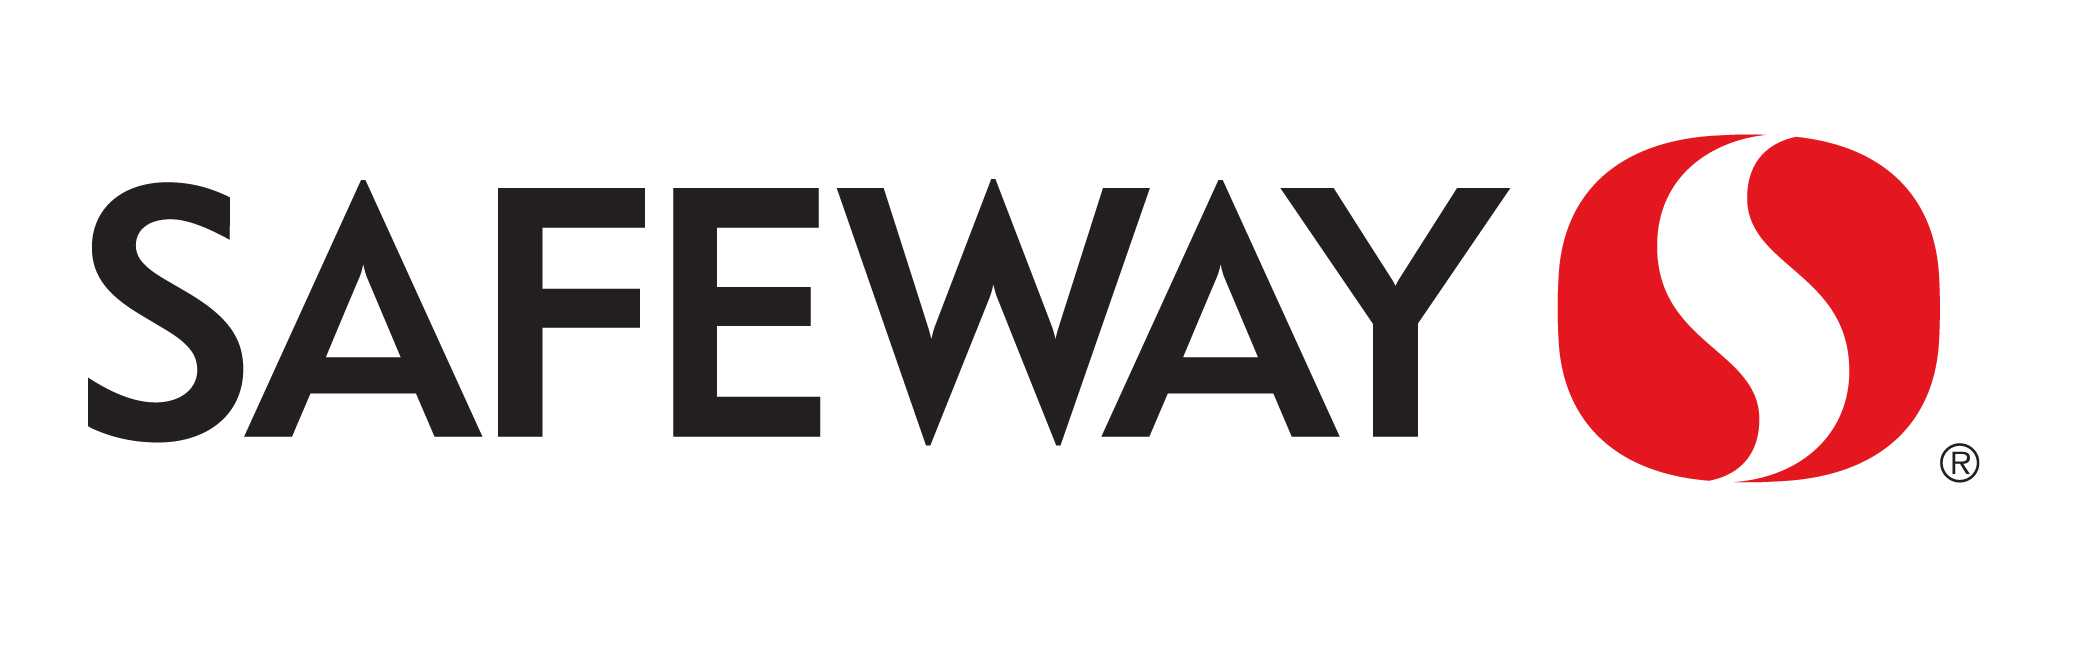 safeway hours, safeway holiday hours